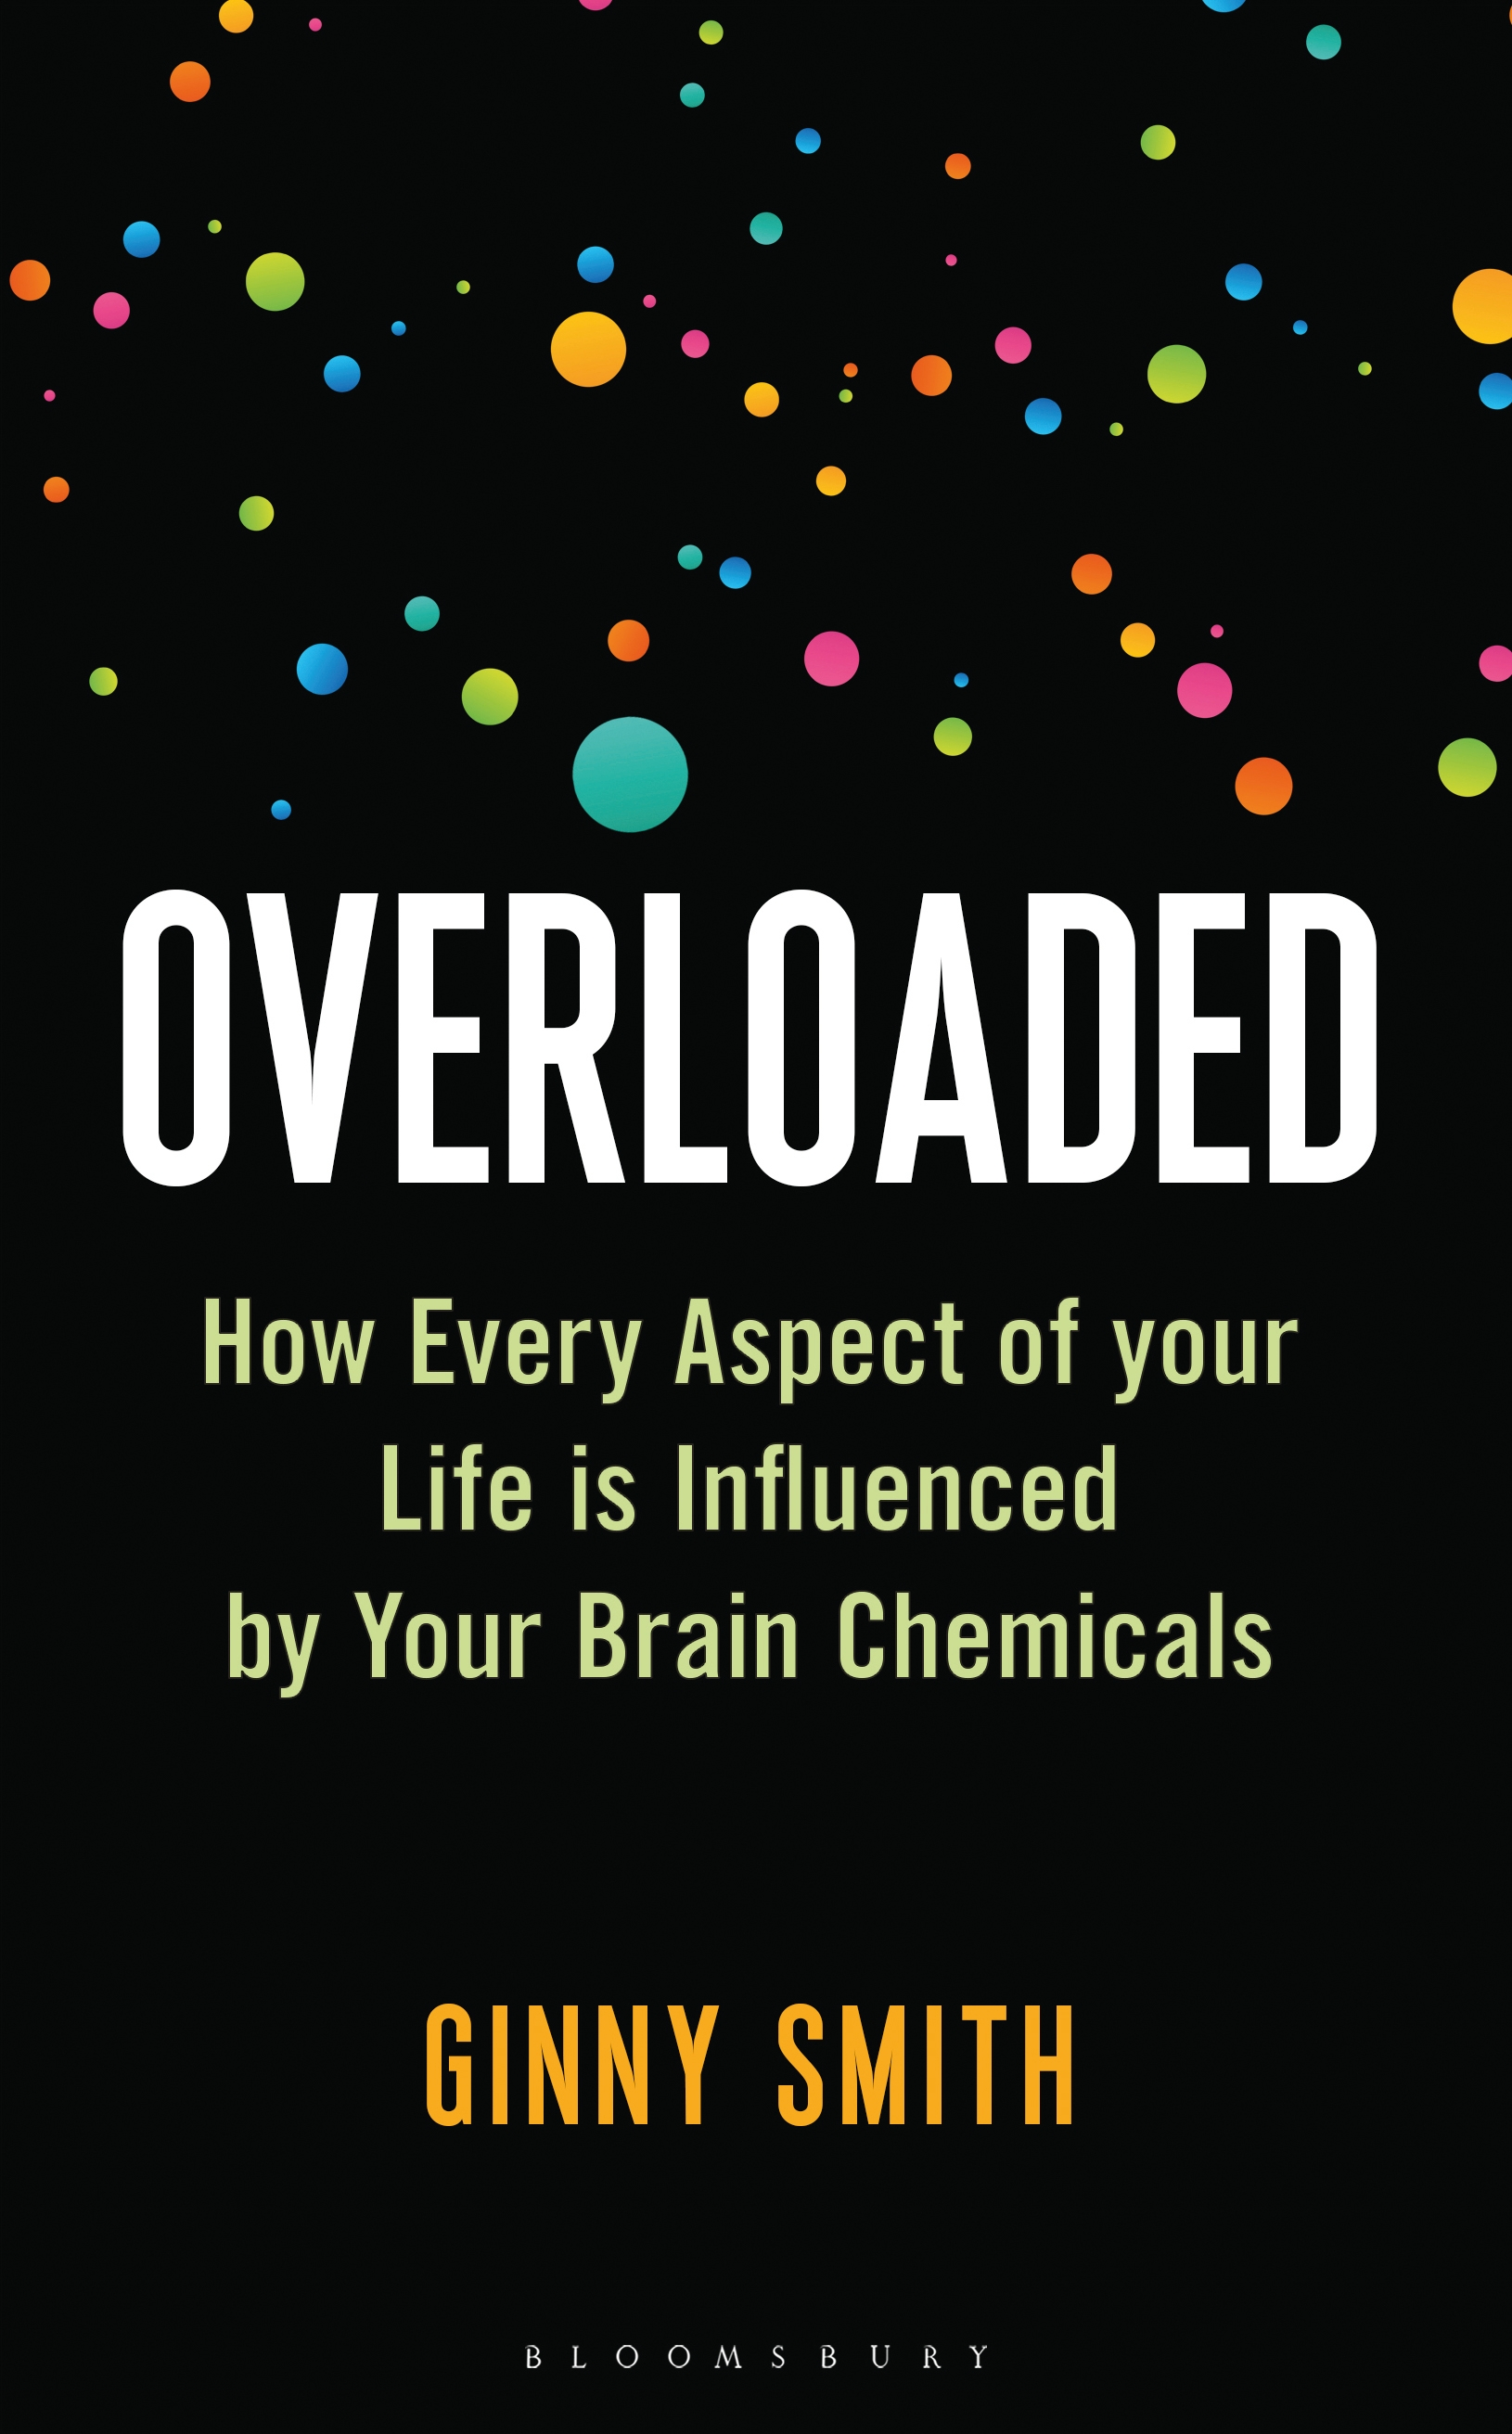 Overloaded, by Ginny Smith